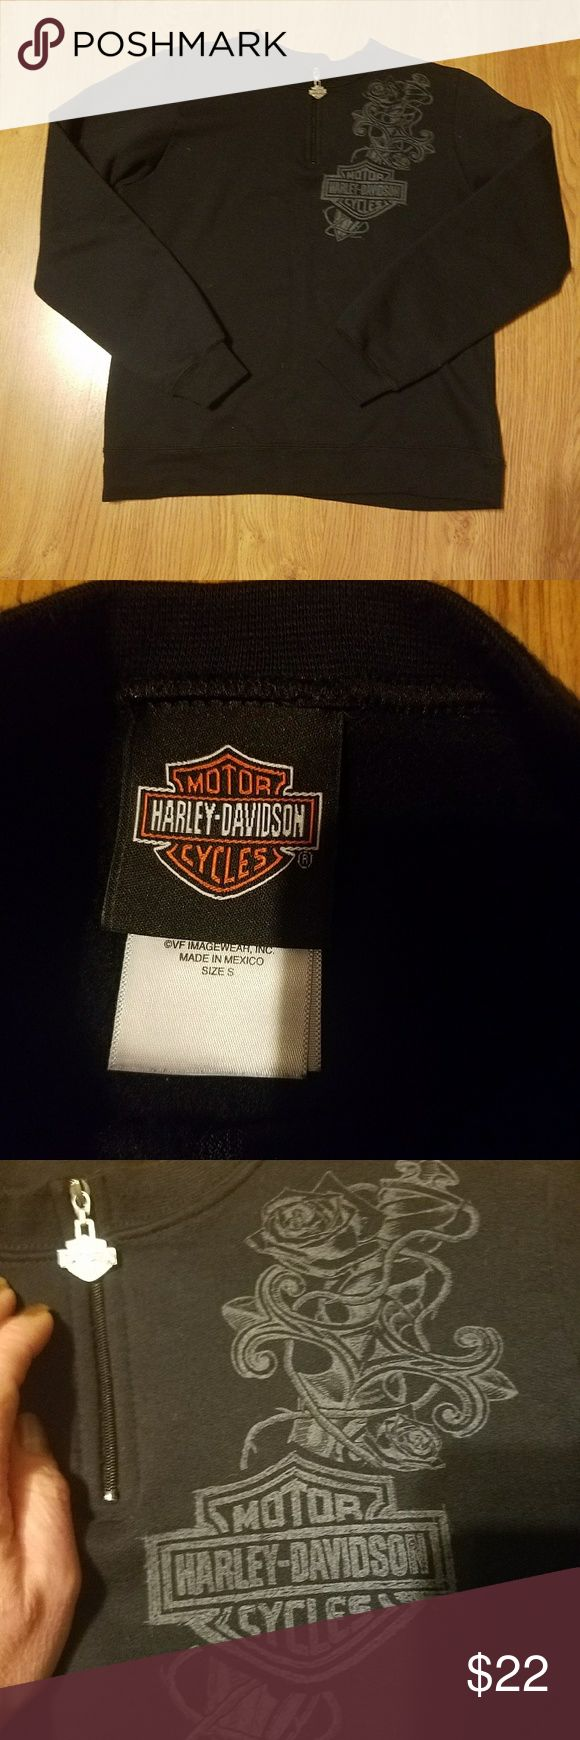 Harley-Davidson Sweatshirt Size Small EUC This is a Harley-Davidson Sweatshirt size small, in EUC. Black half zip with gray design on front chest and back. Very warm. Worn a few times. Always hung to dry. No TRADES. THANKS FOR LOOKING. Harley-Davidson Tops Sweatshirts & Hoodies